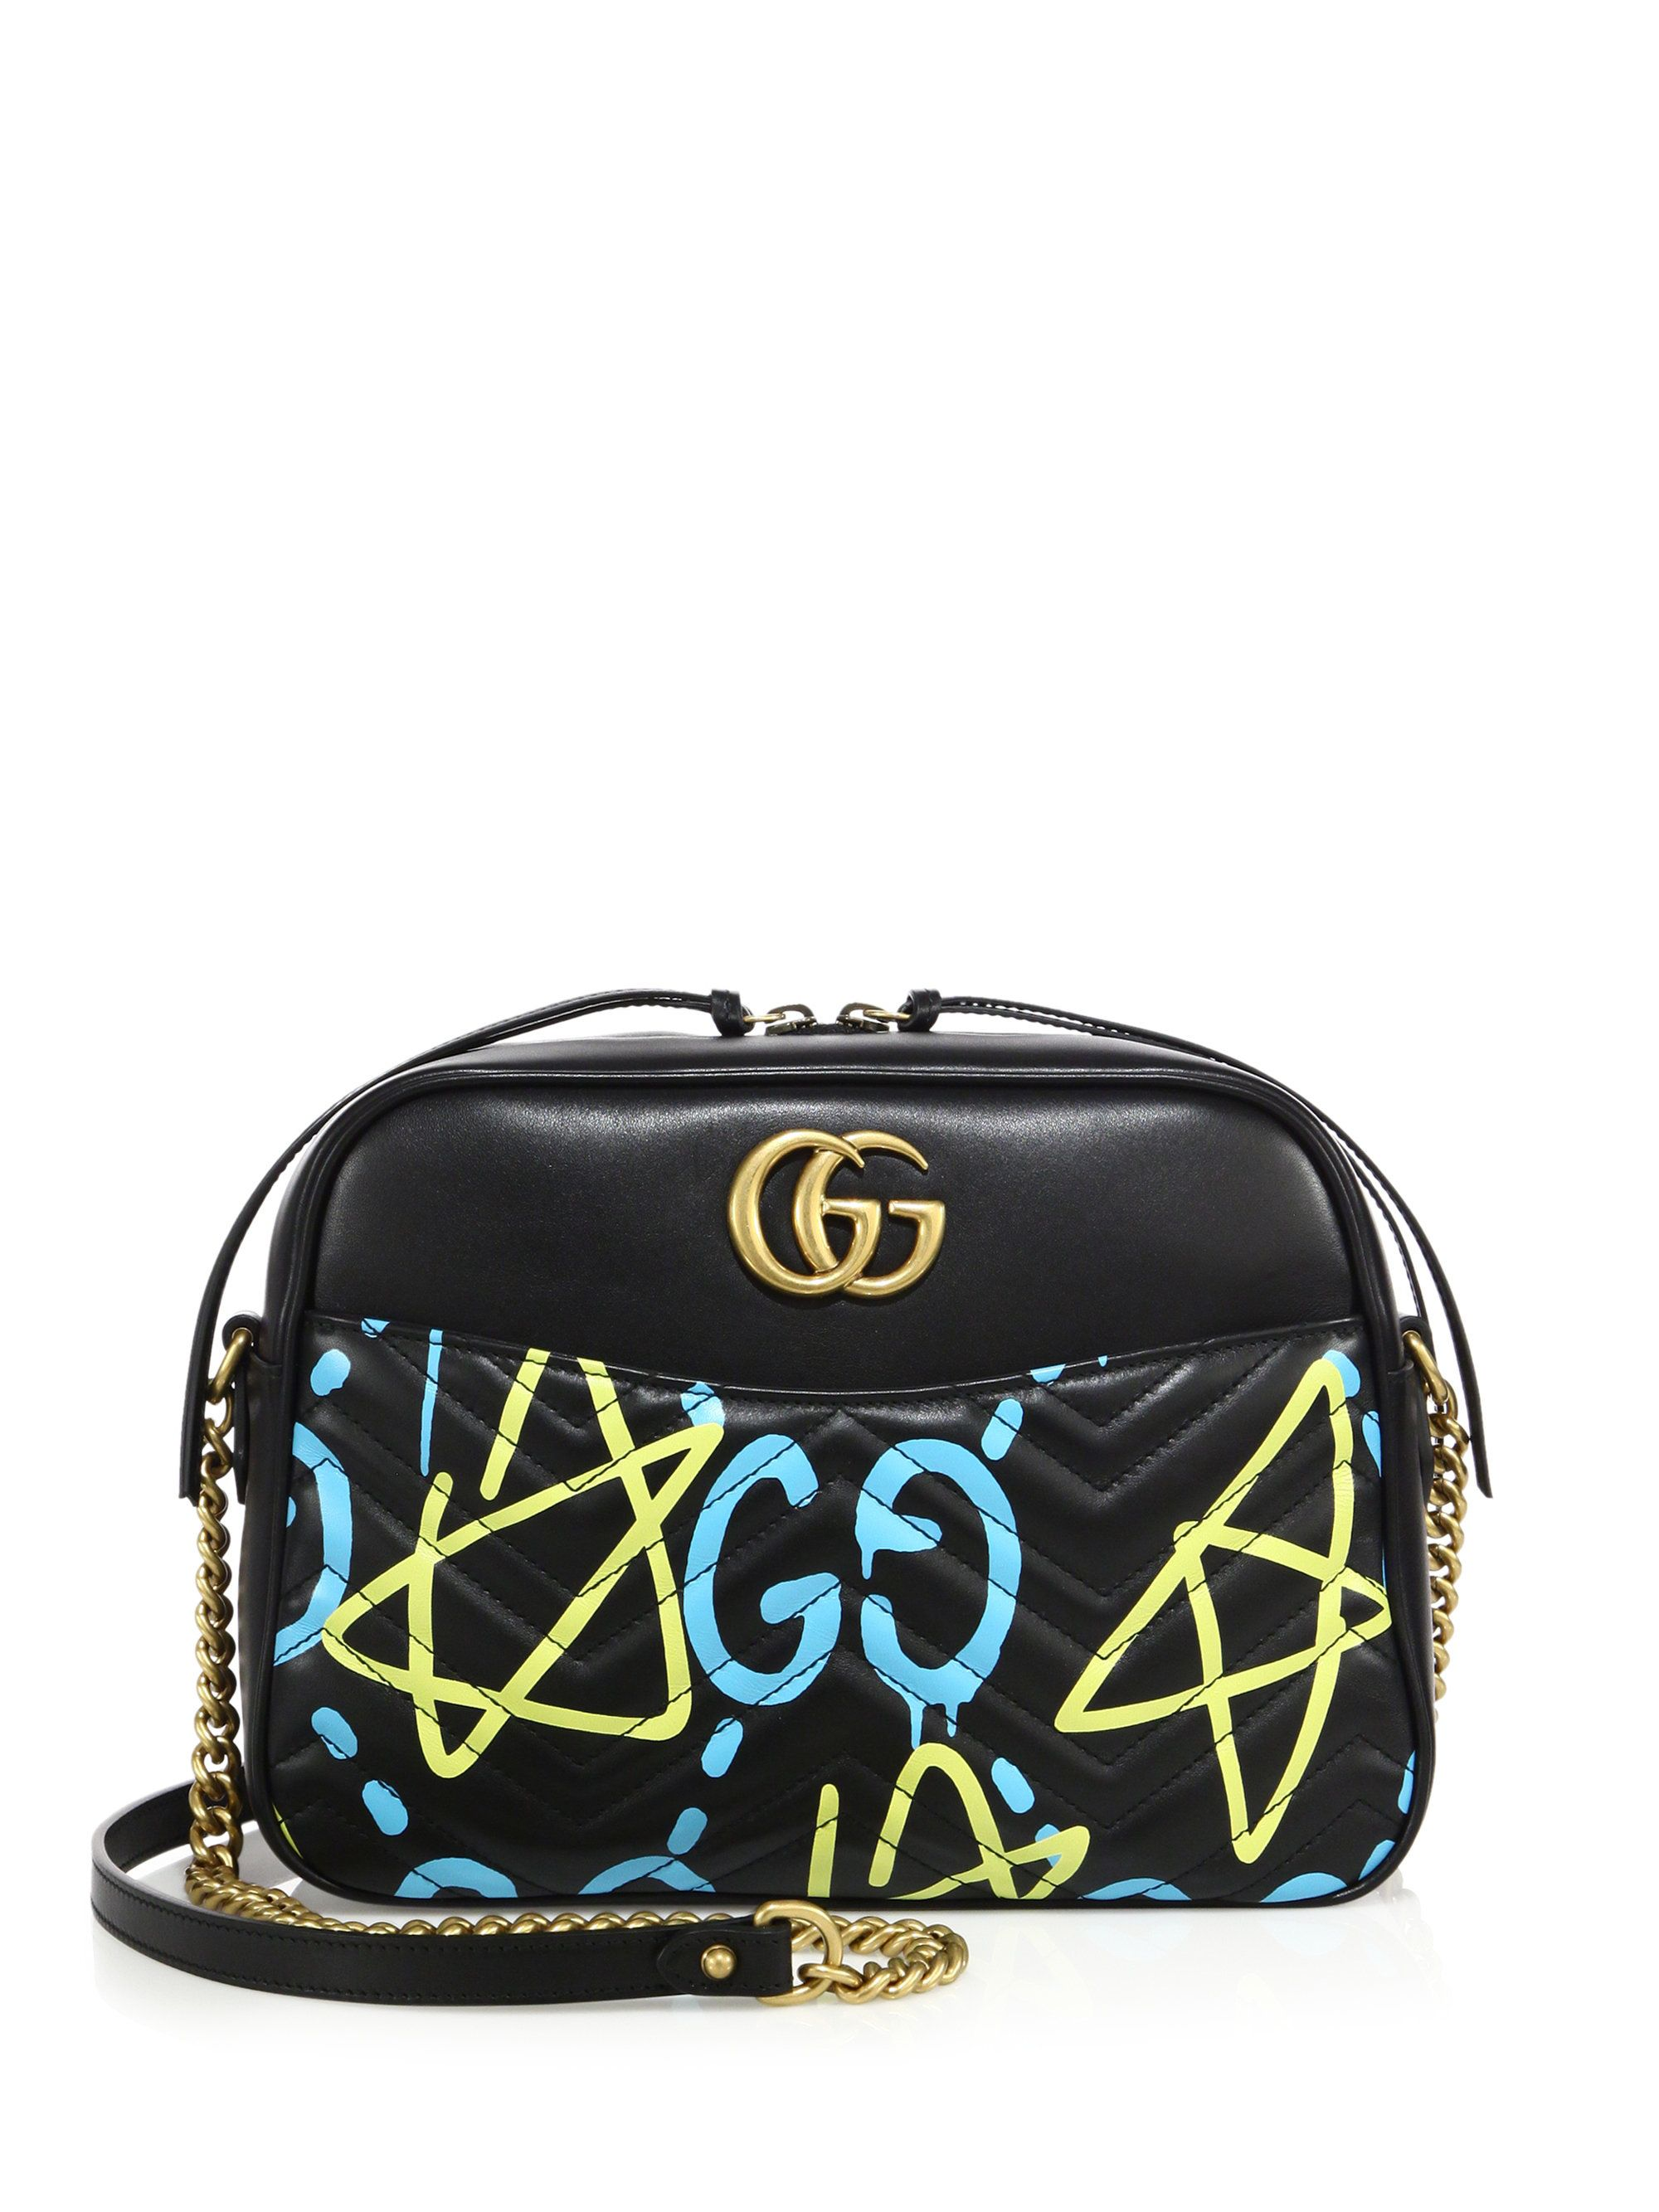 9224d067106c Gaga for Gucci | Black Ghost GG Marmont Matelassé Leather Shoulder Bag |  Lyst #gucci